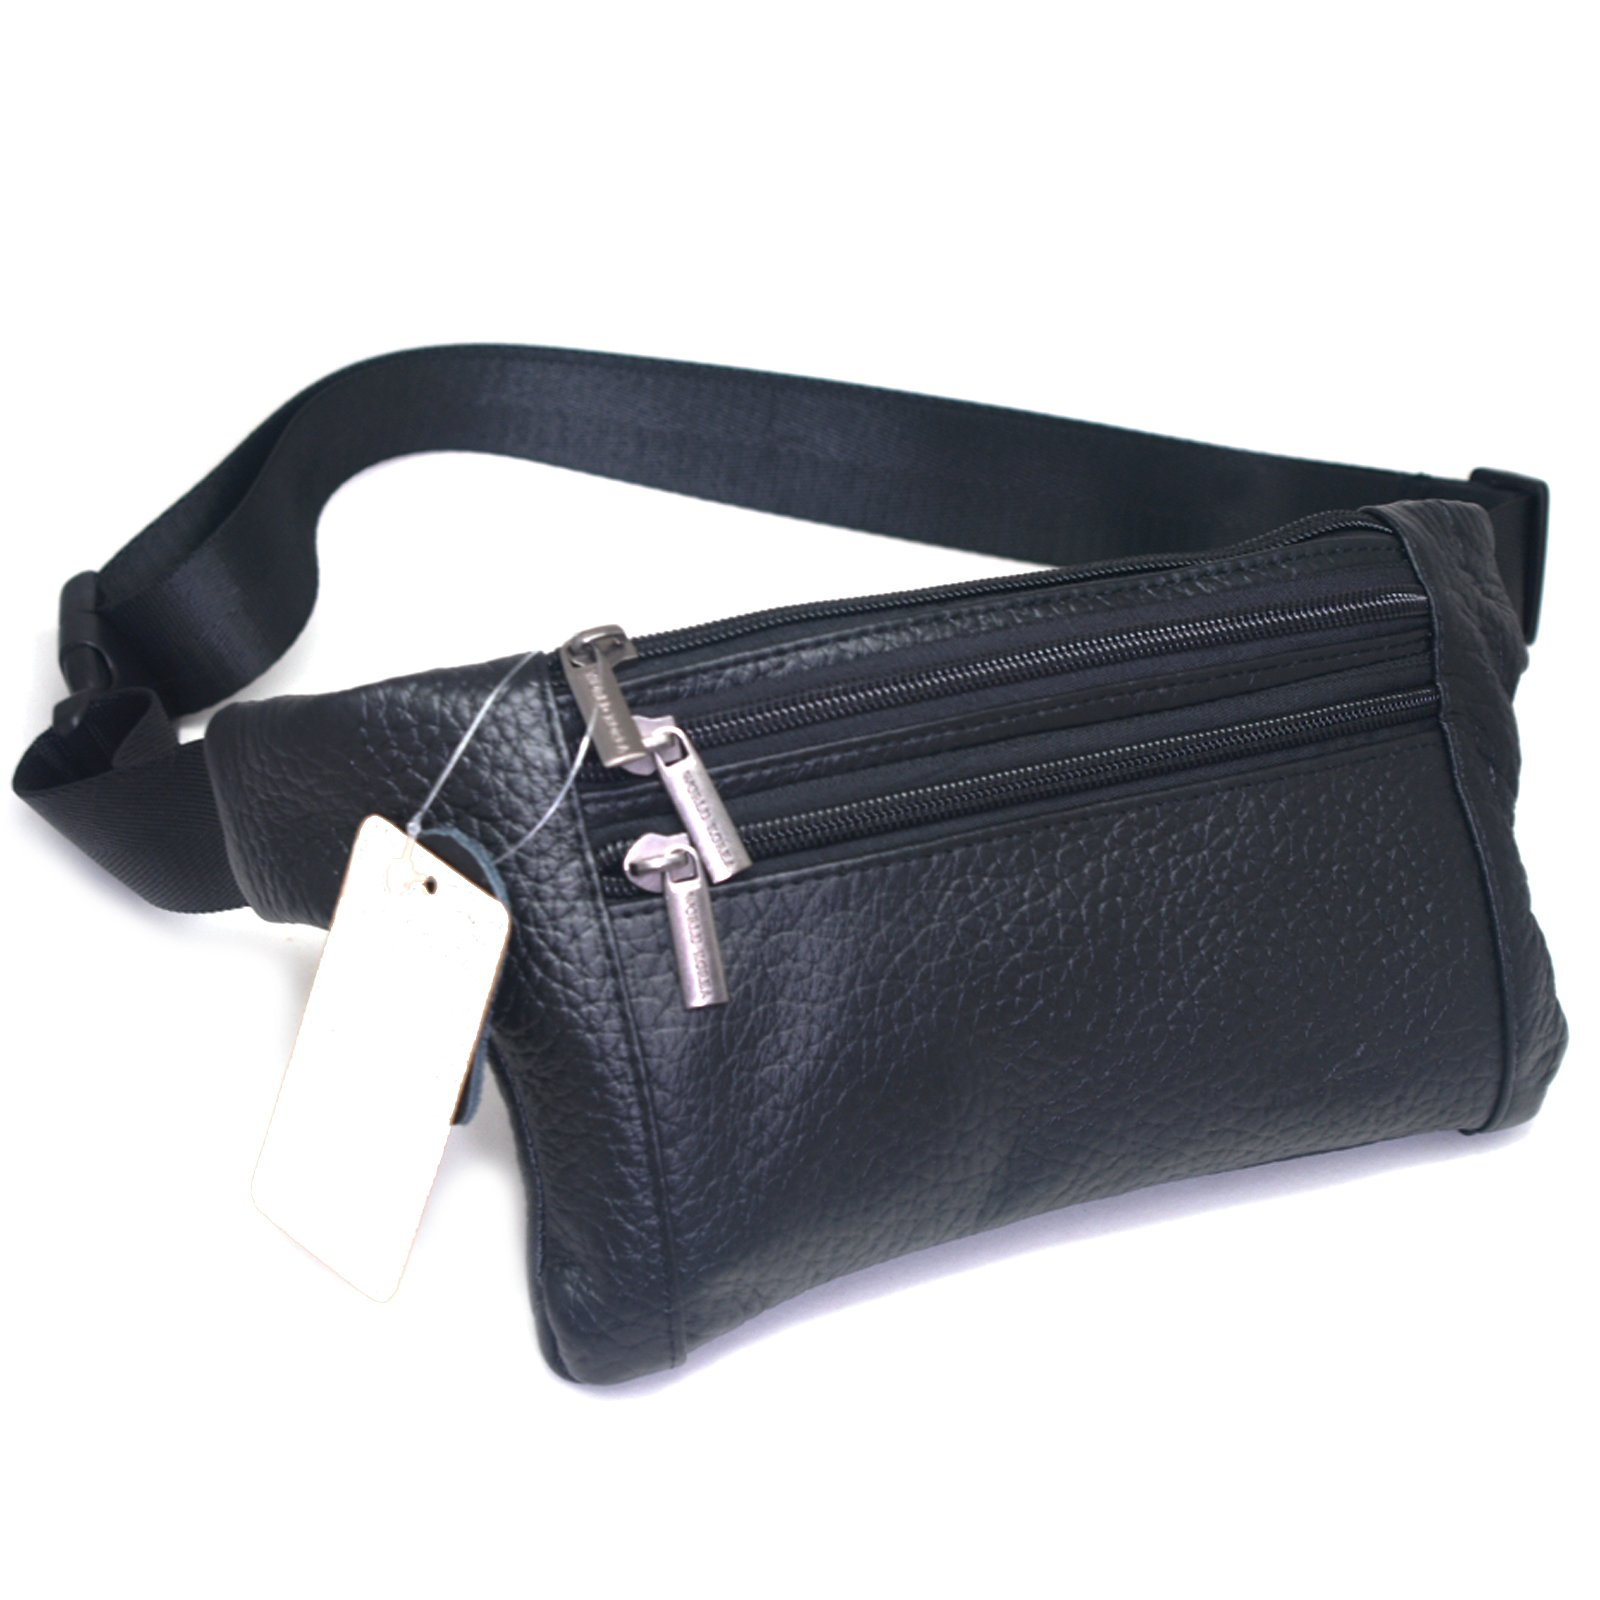 dfadfc54b98 Get Quotations · Mens Leather Waist Hip Lumbar Fanny Pack Bag Womens Travel  Cell Phone Pocket